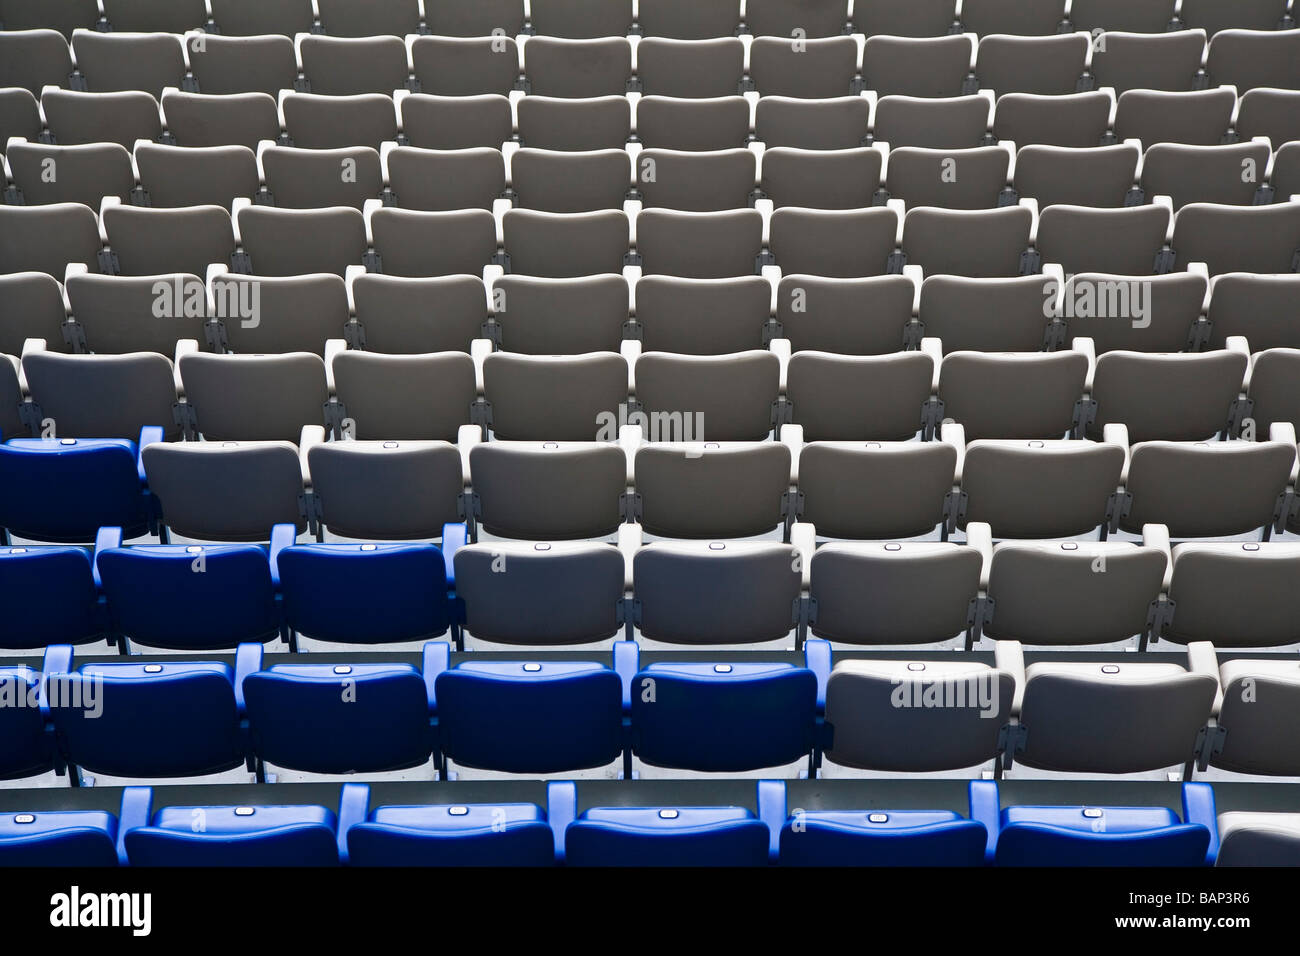 Seats The Amsterdam Arena home of Ajax FC Amsterdam The Netherlands - Stock Image